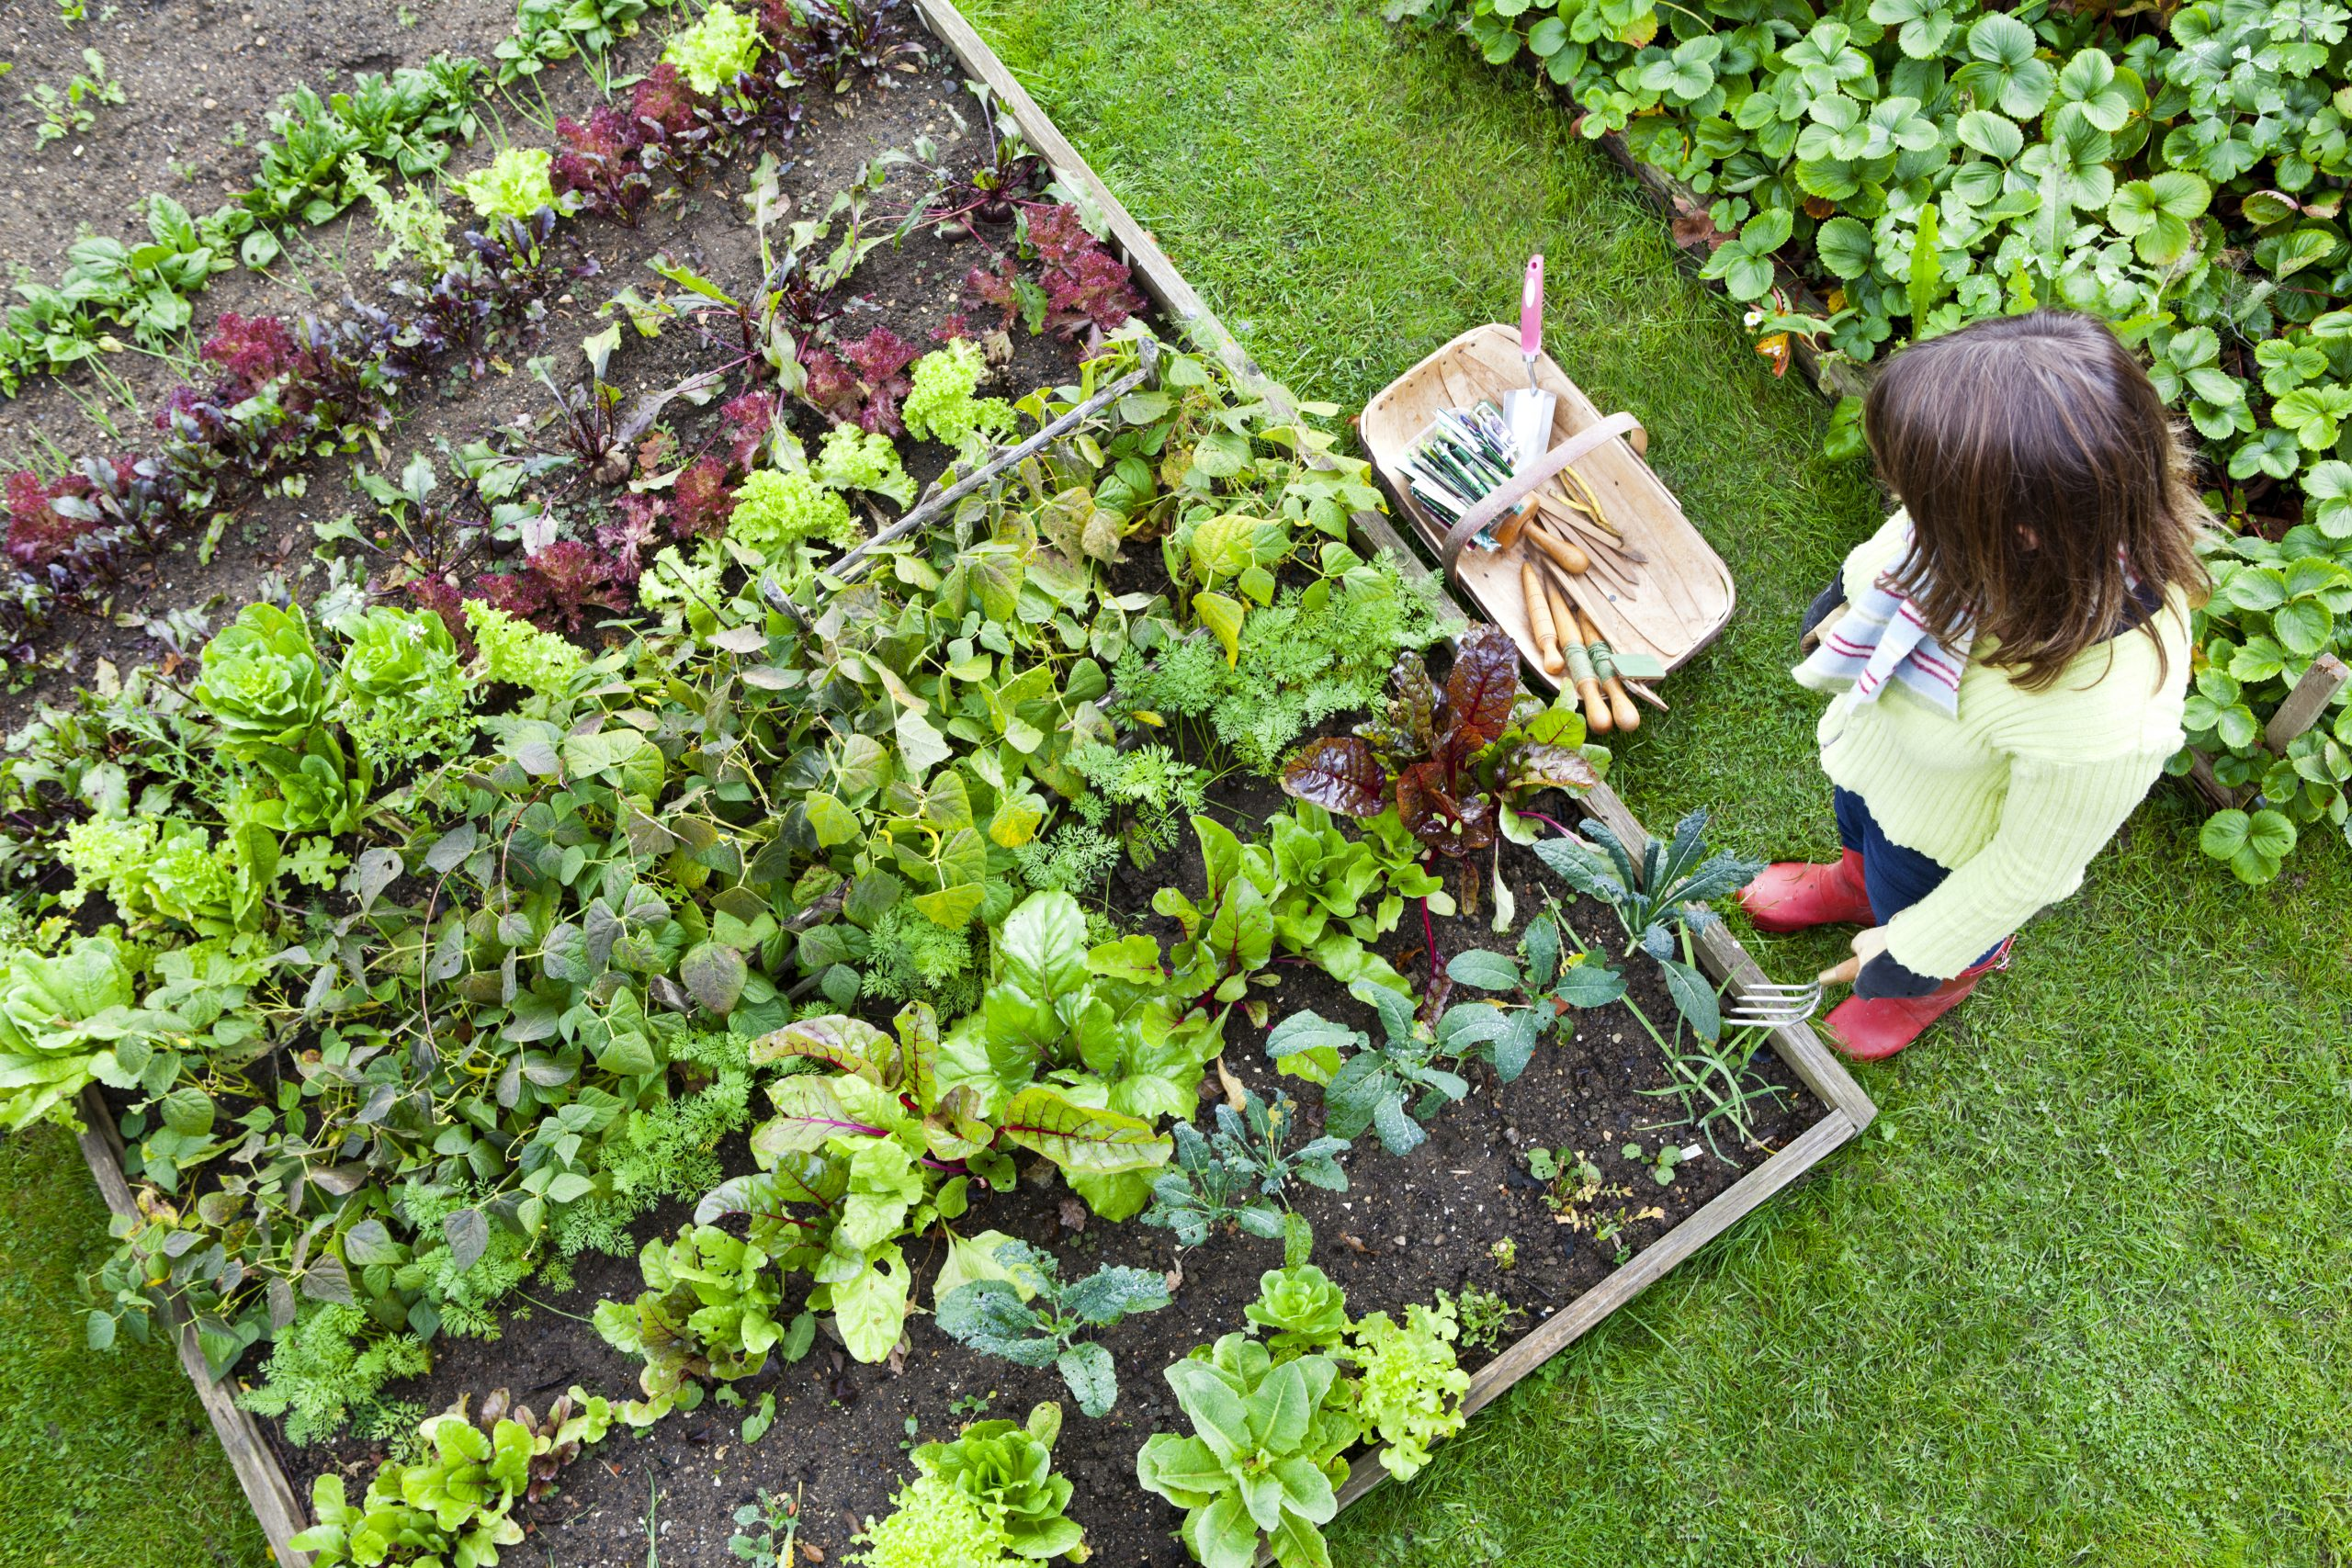 Woman looking down at an organic raised bed vegetable garden, holding weeding fork.